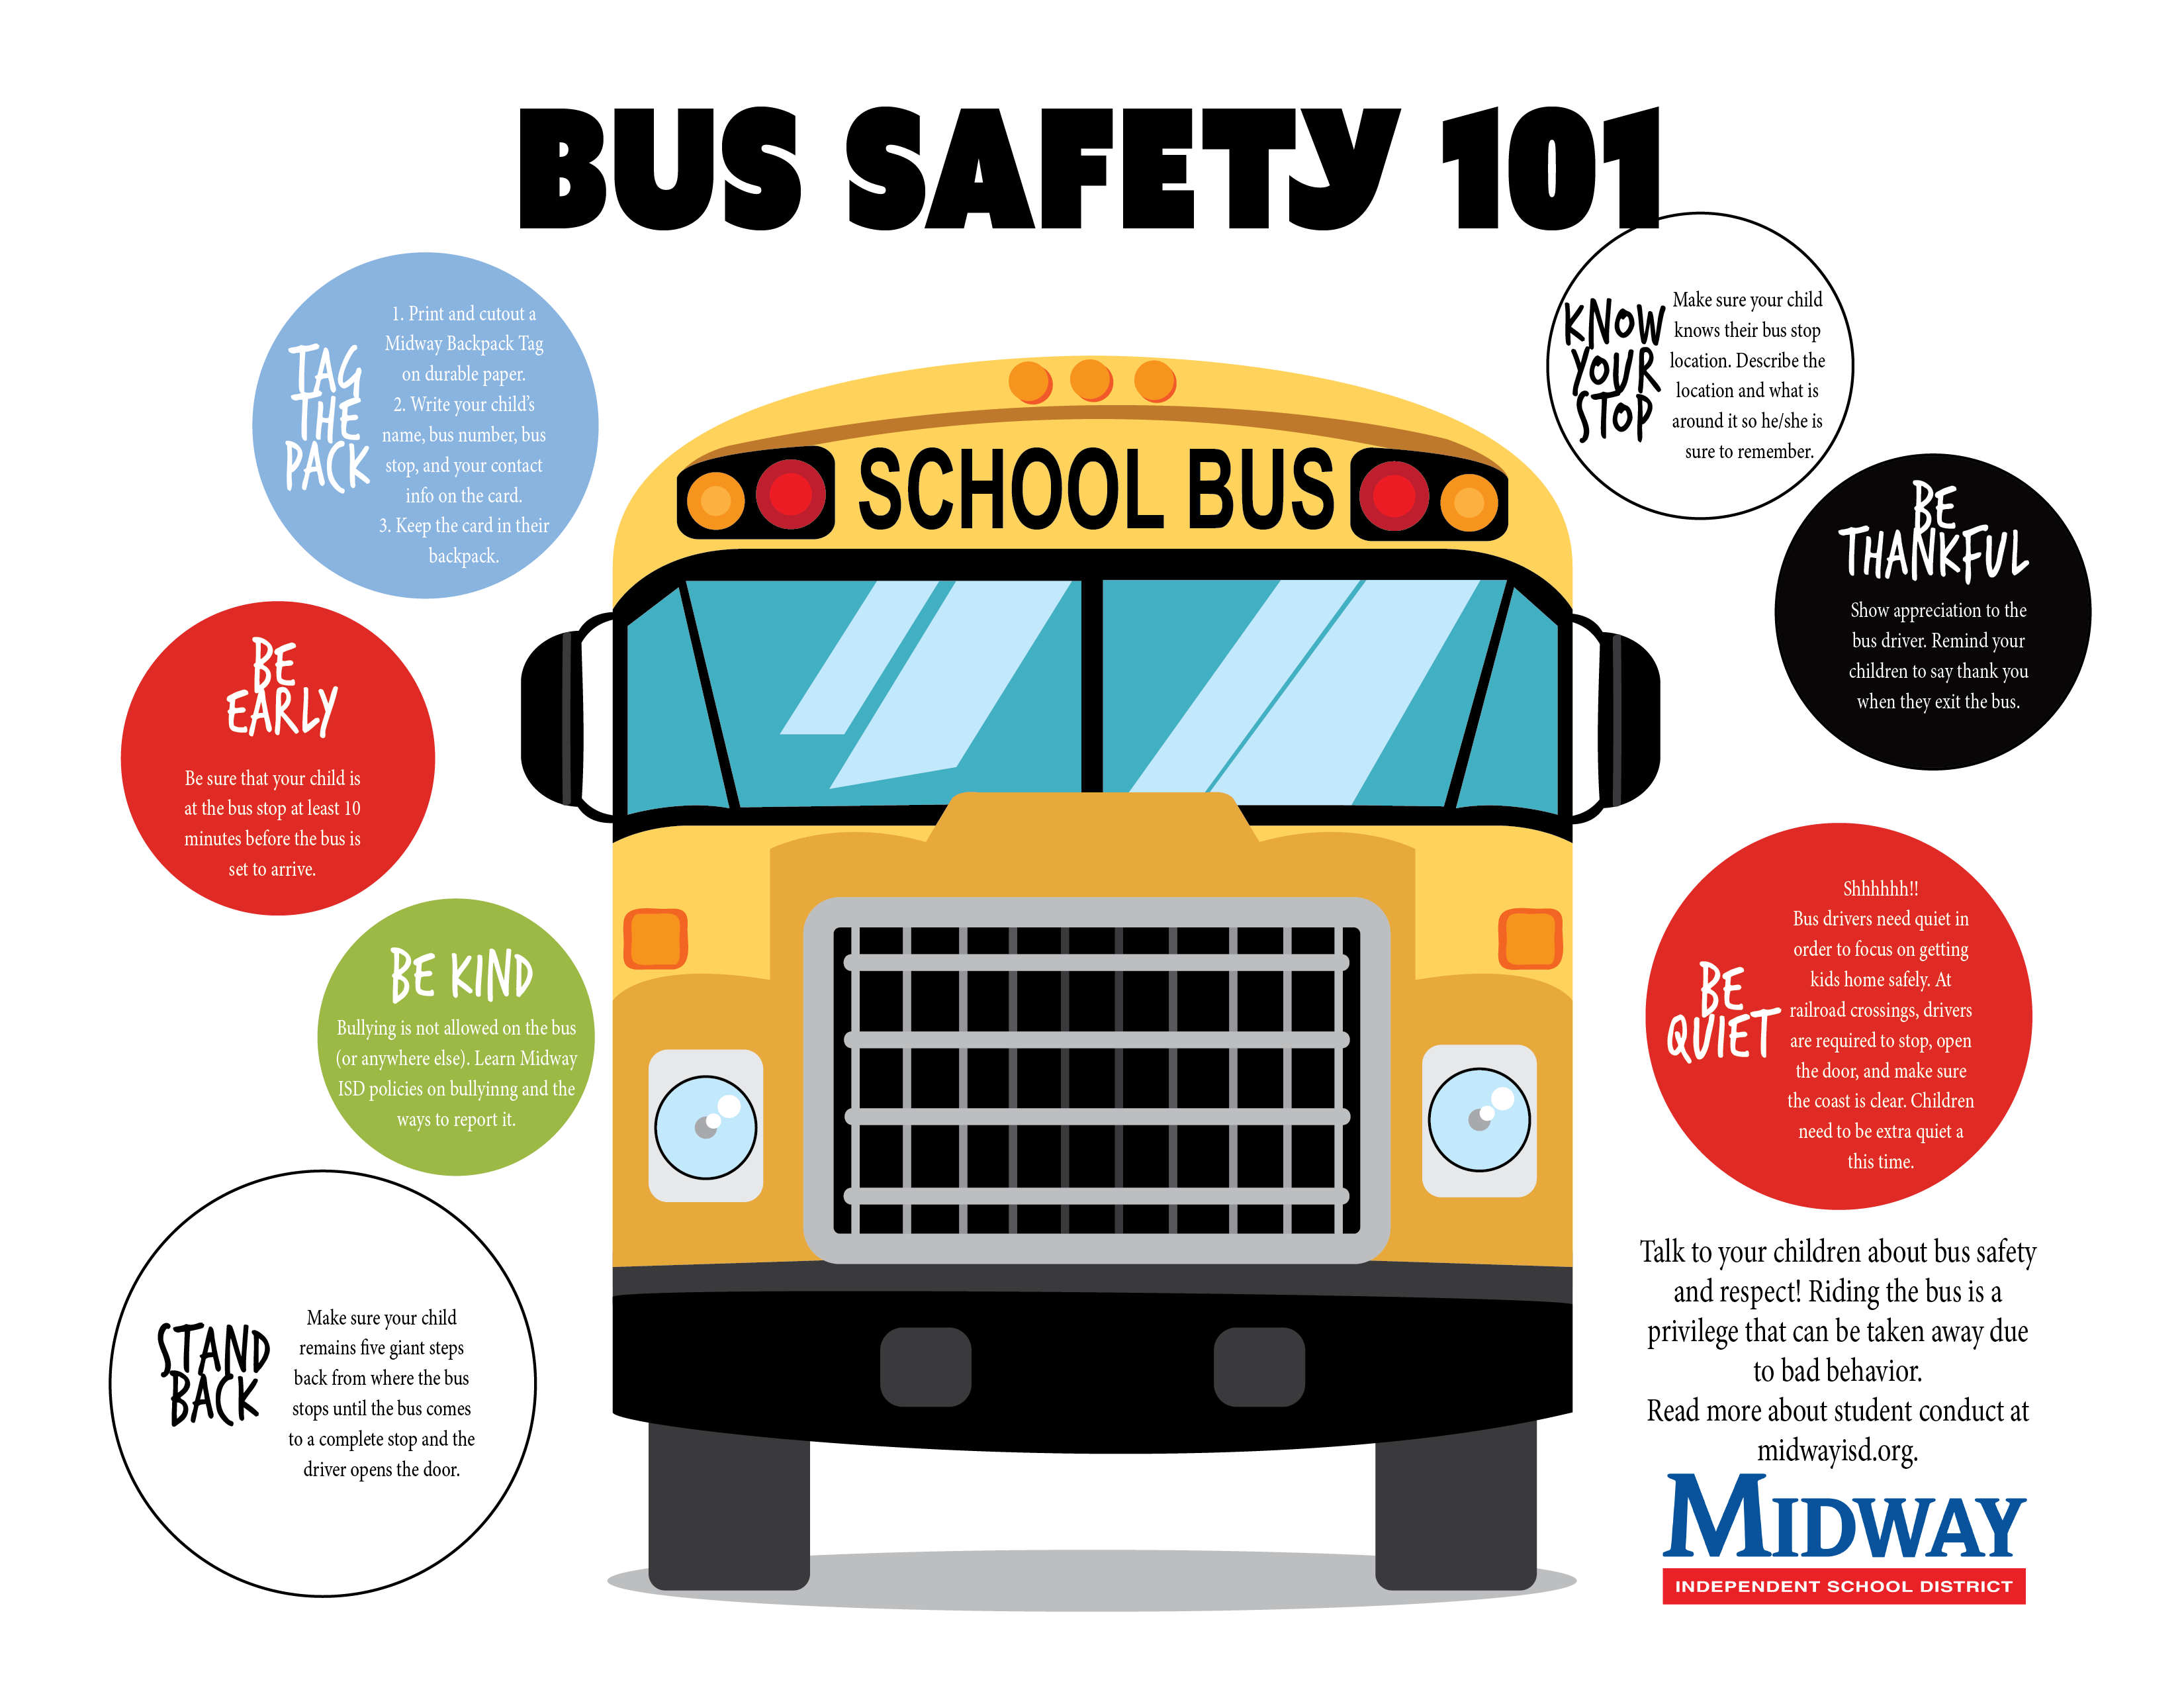 Midway Programs Bus Safety